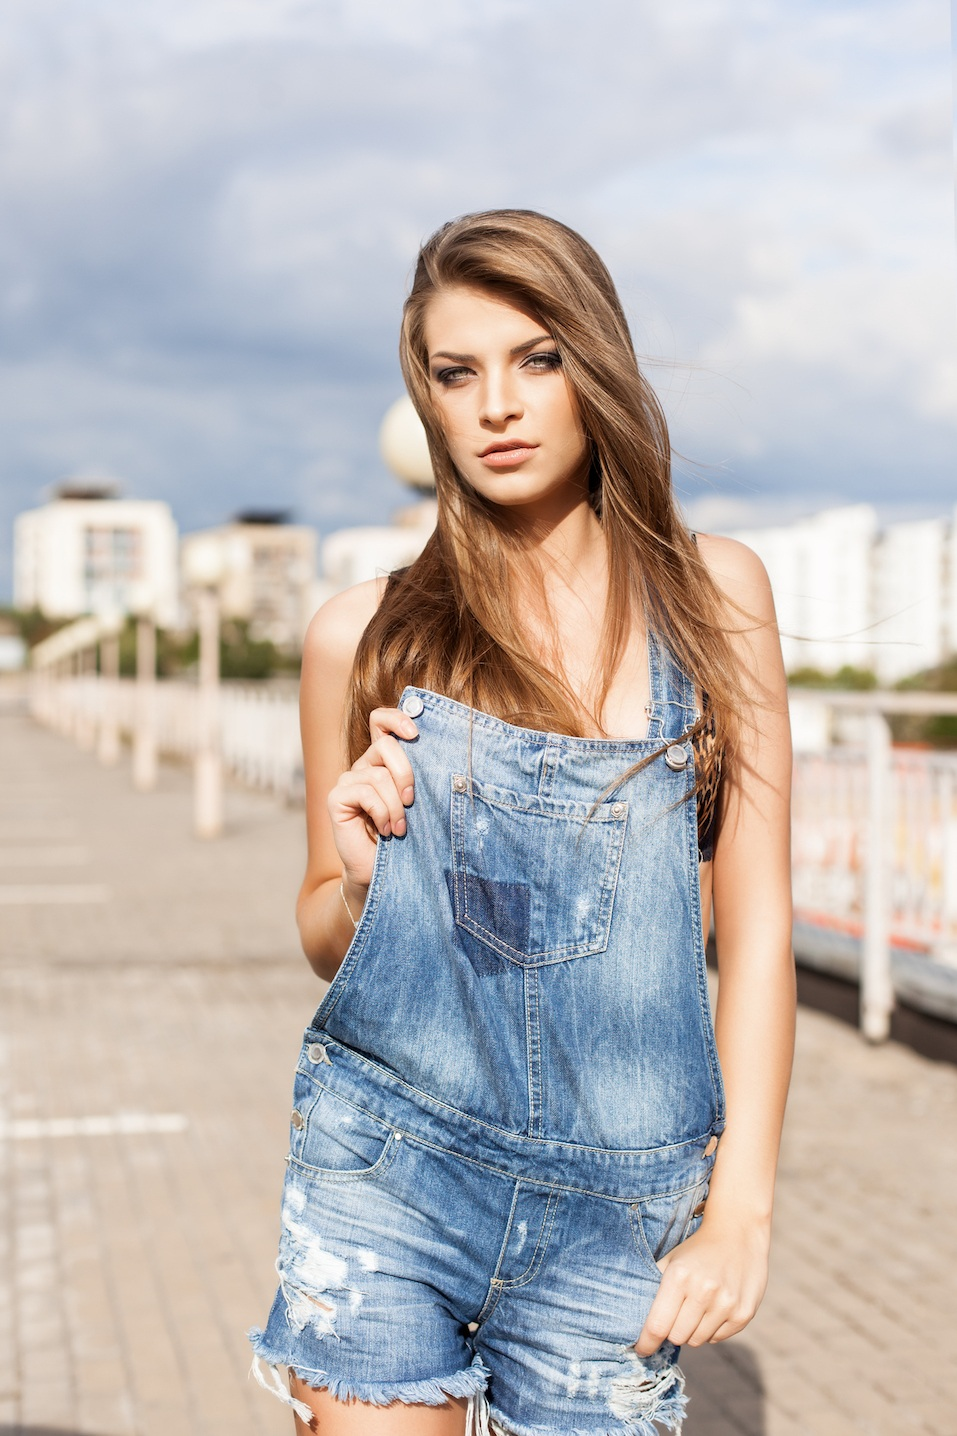 Beautiful girl with long silky hair in denim short overalls